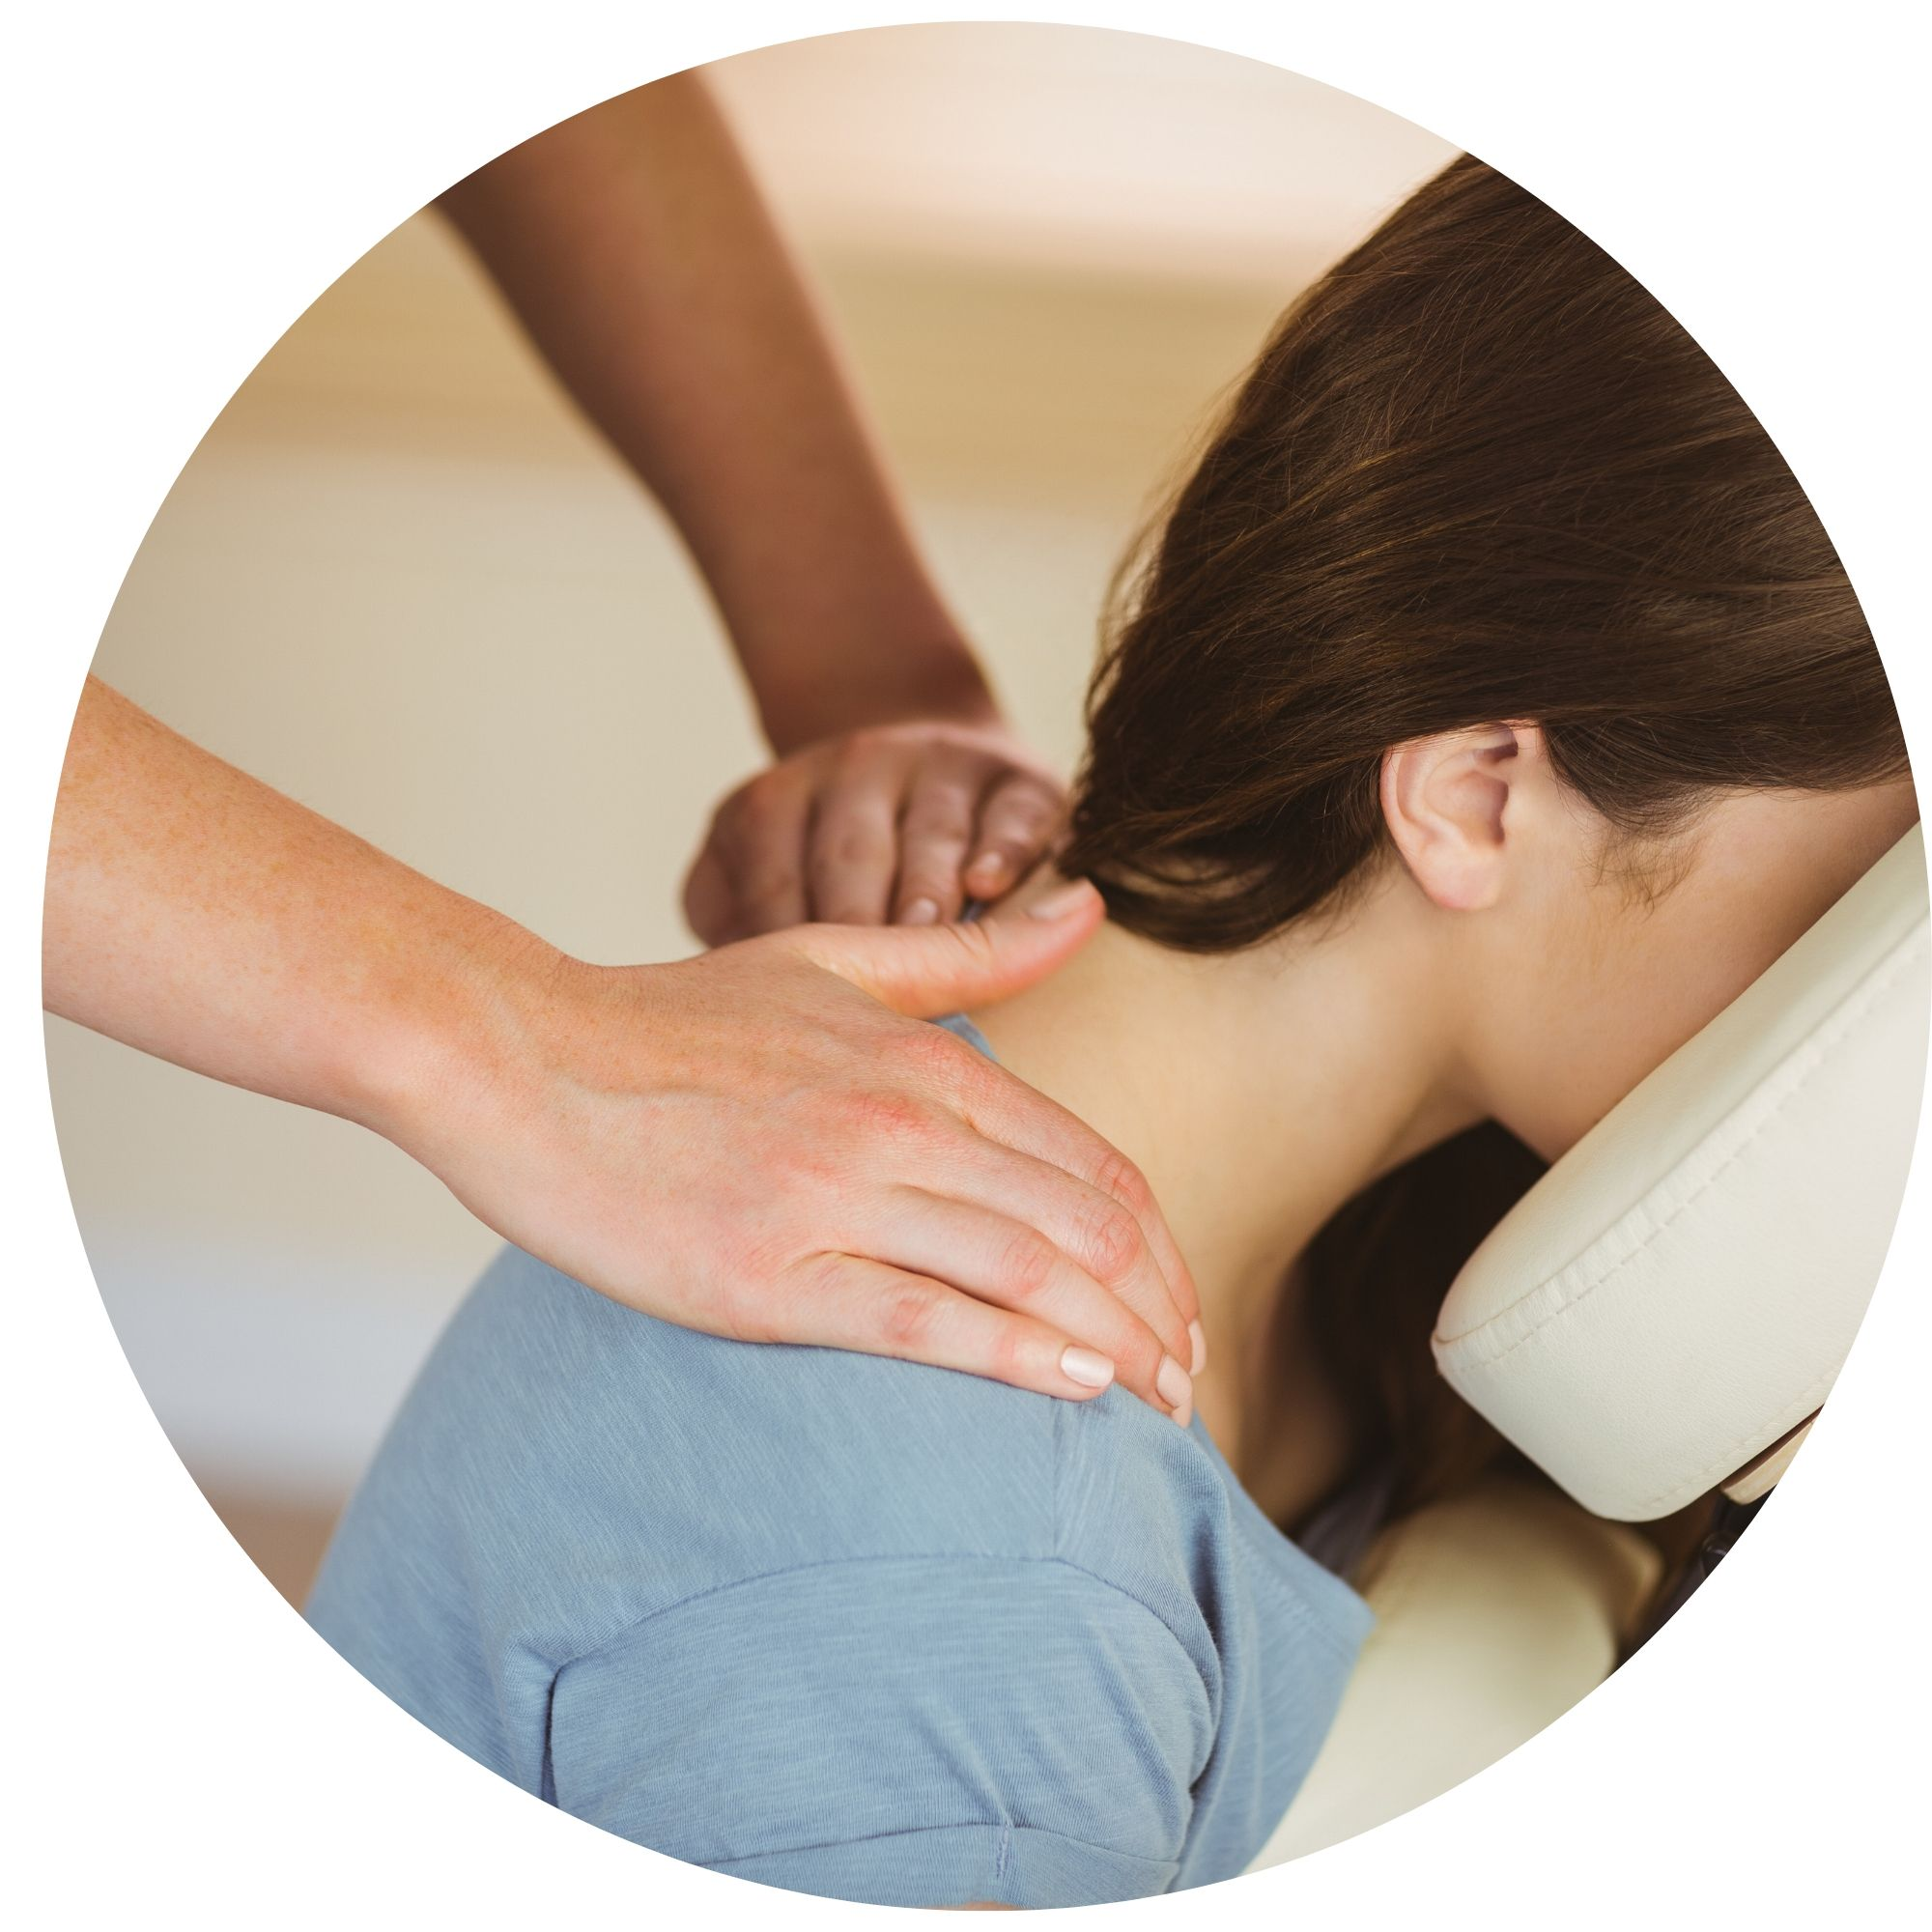 MASSAGE - Enjoy the many benefits of massage - whether you are seeking relaxation or rehabilitation our registered therapists offer specialized treatment to ensure you leave satisfied, rejuvenated, and ready for another!